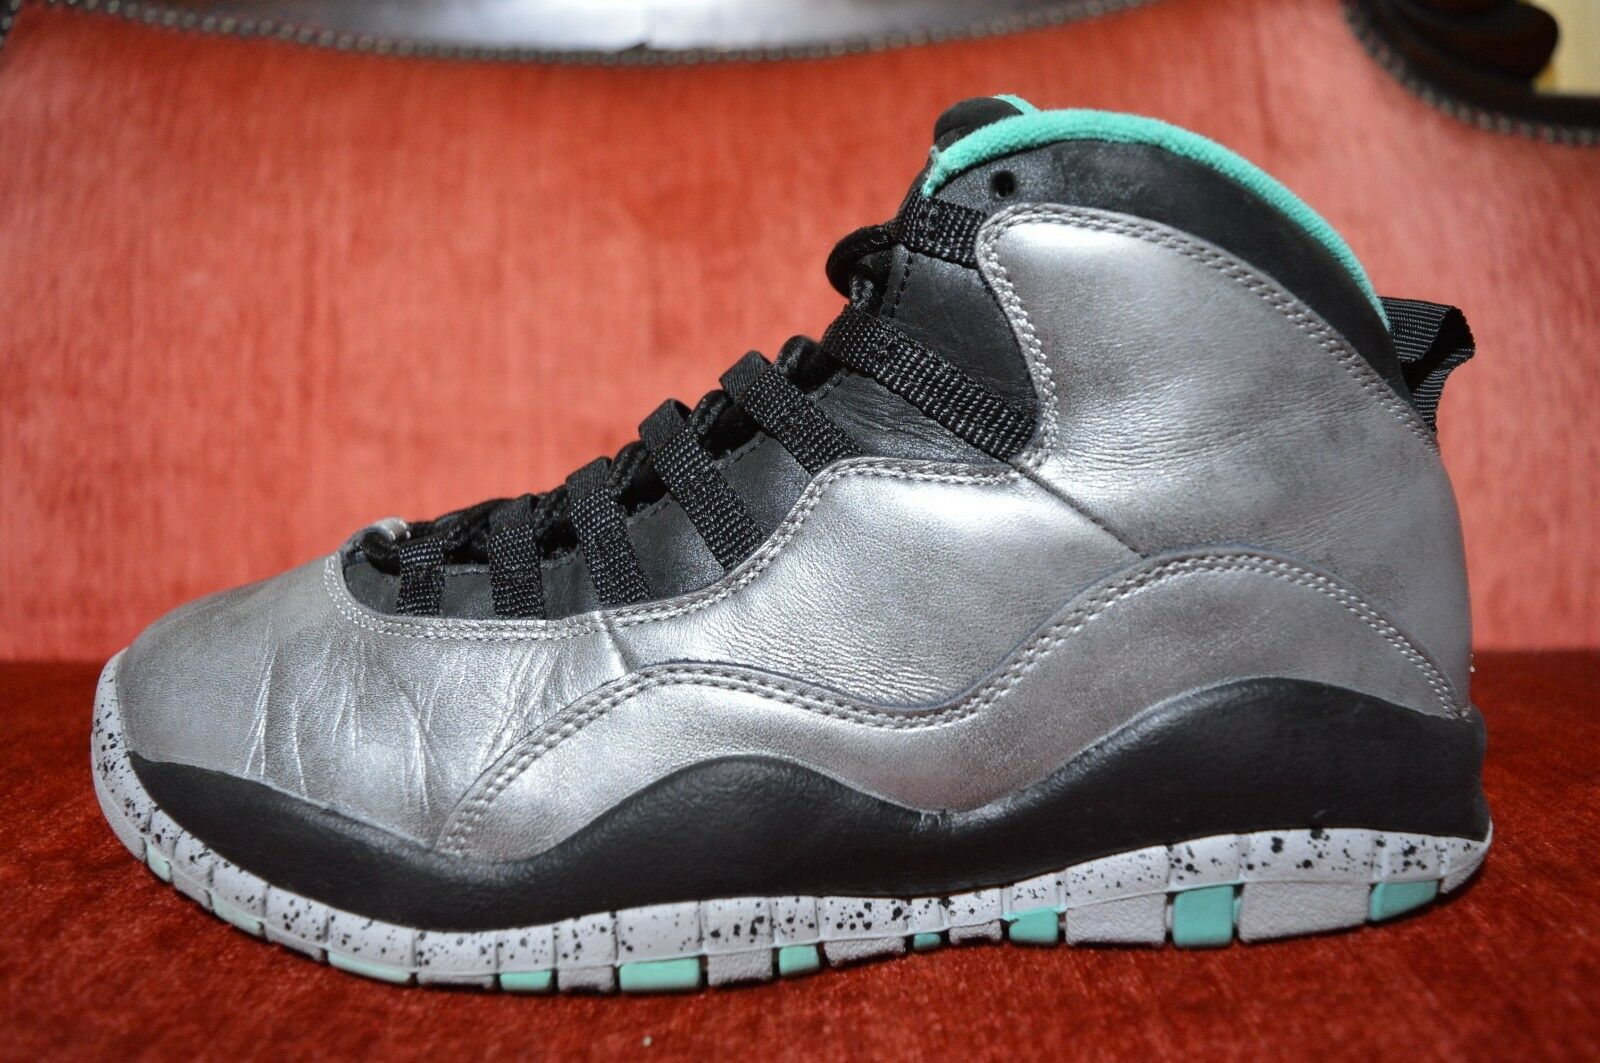 2fe70847c460 ... CLEAN CLEAN CLEAN Nike Air Jordan 10 X Retro Lady Liberty Statue 705178- 045 NYC ...